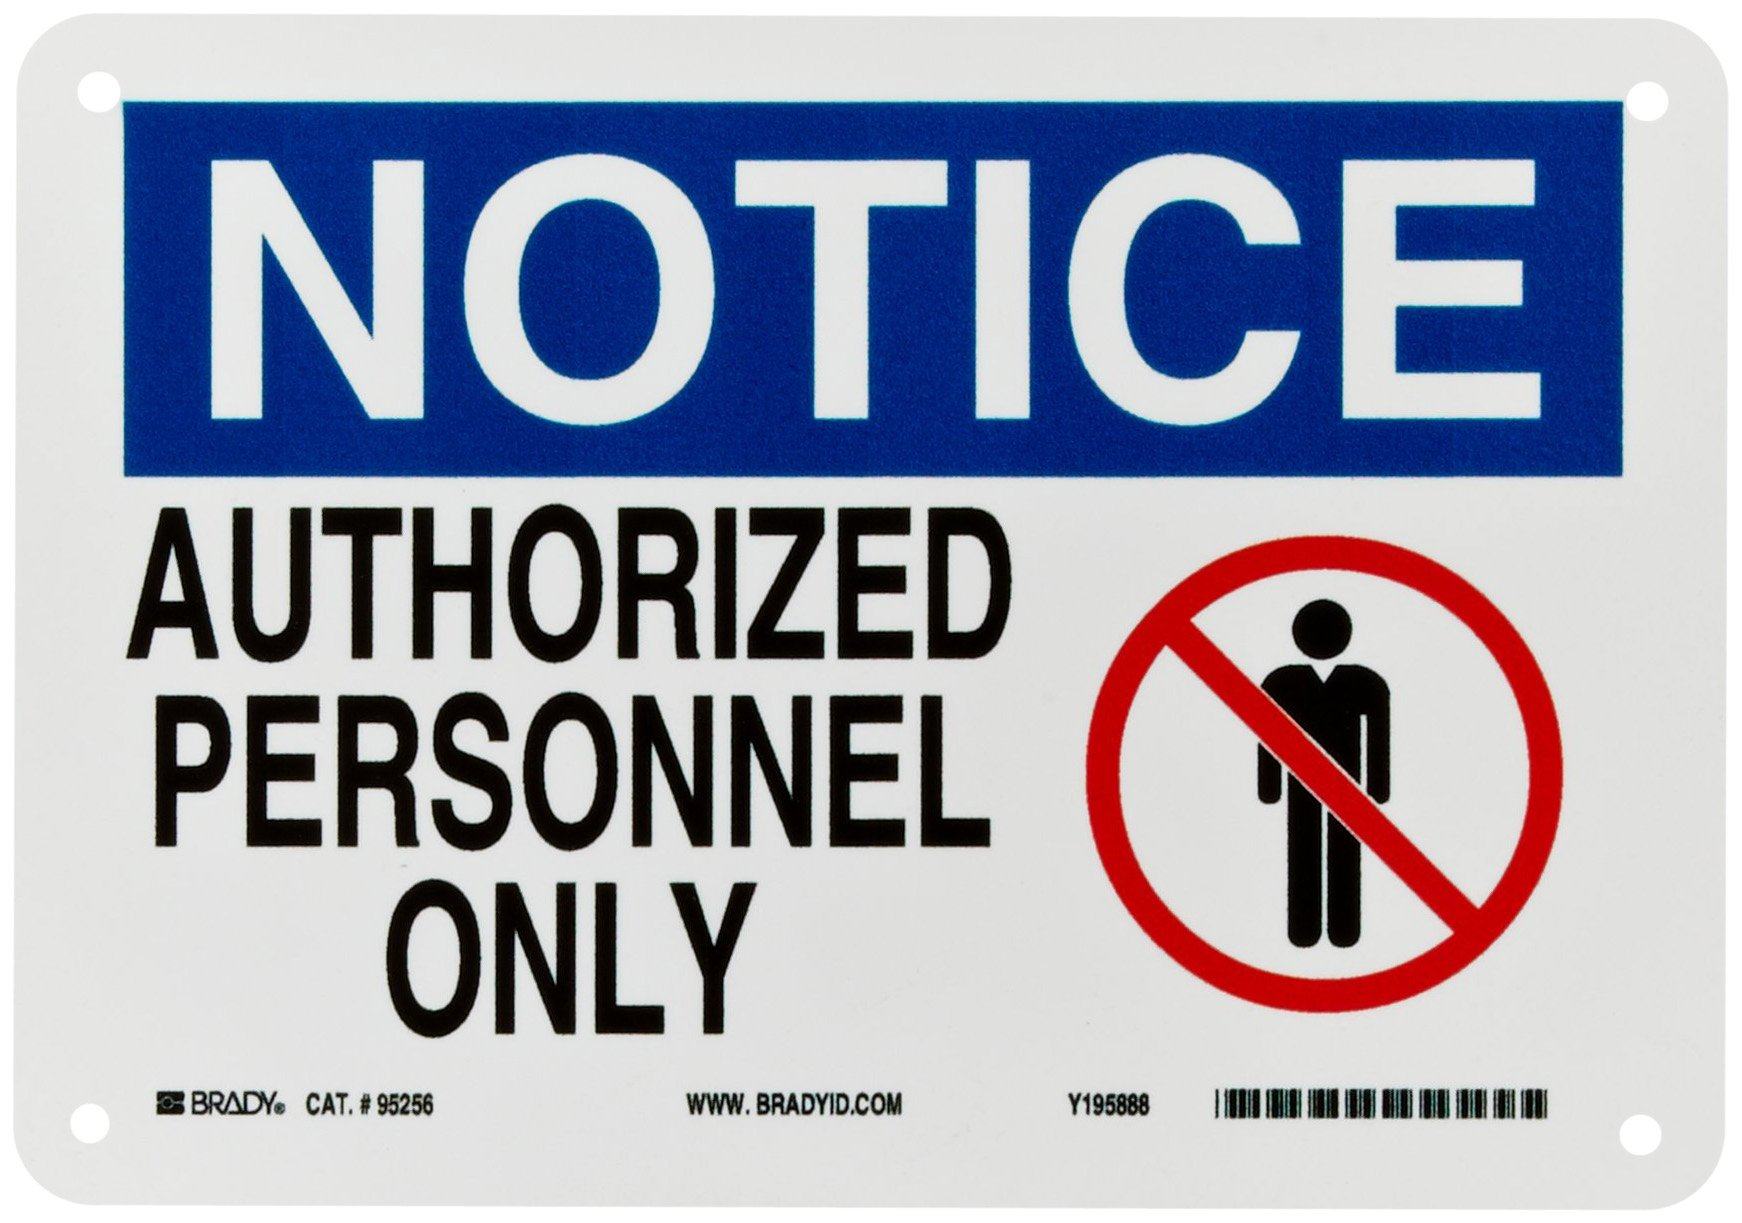 """Brady 95256 10"""" Width x 7"""" Height B-401 Plastic, Blue and Black on White Admittance Sign, Header """"Notice"""", Legend """"Authorized Personnel Only"""" (with Picto)"""